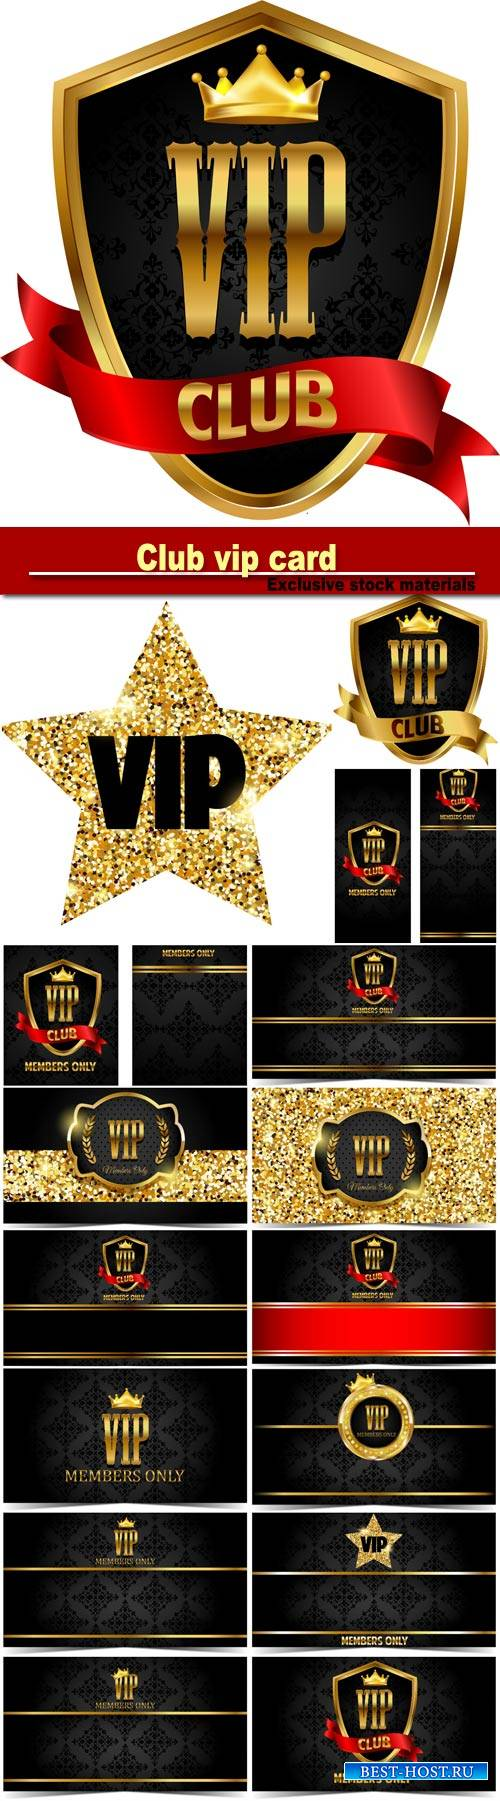 VIP club, vector card